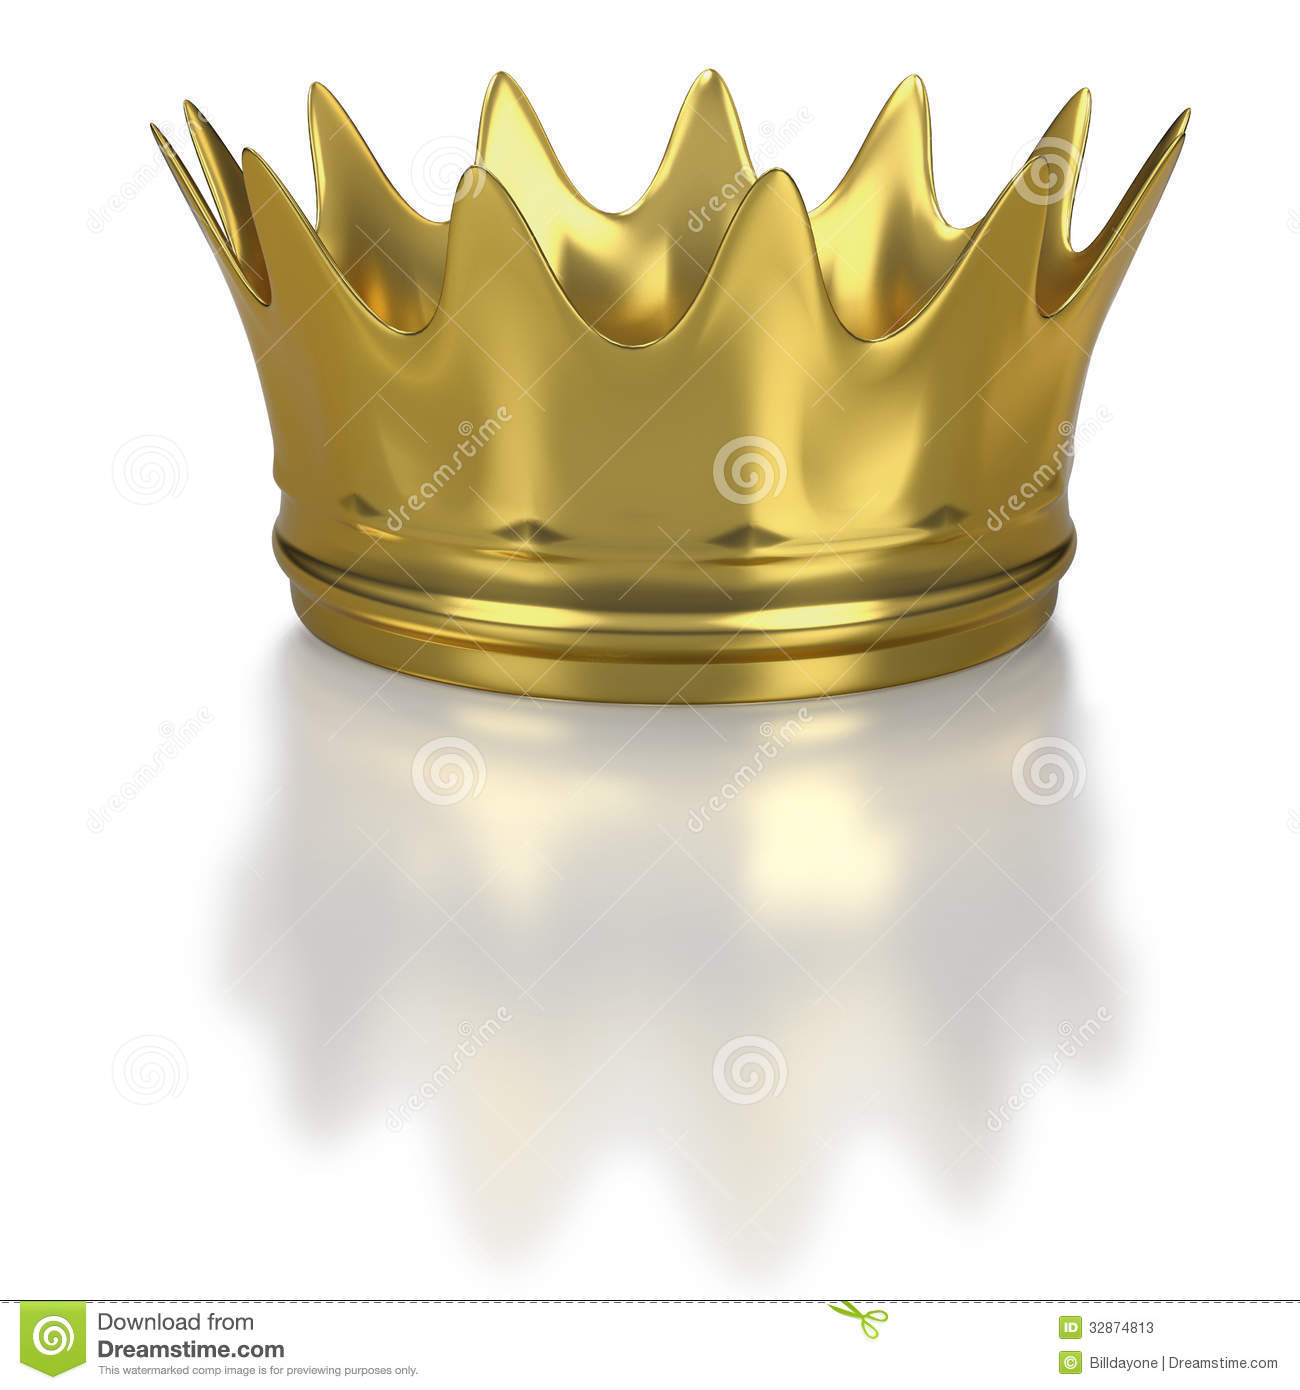 Gold crown background - photo#11